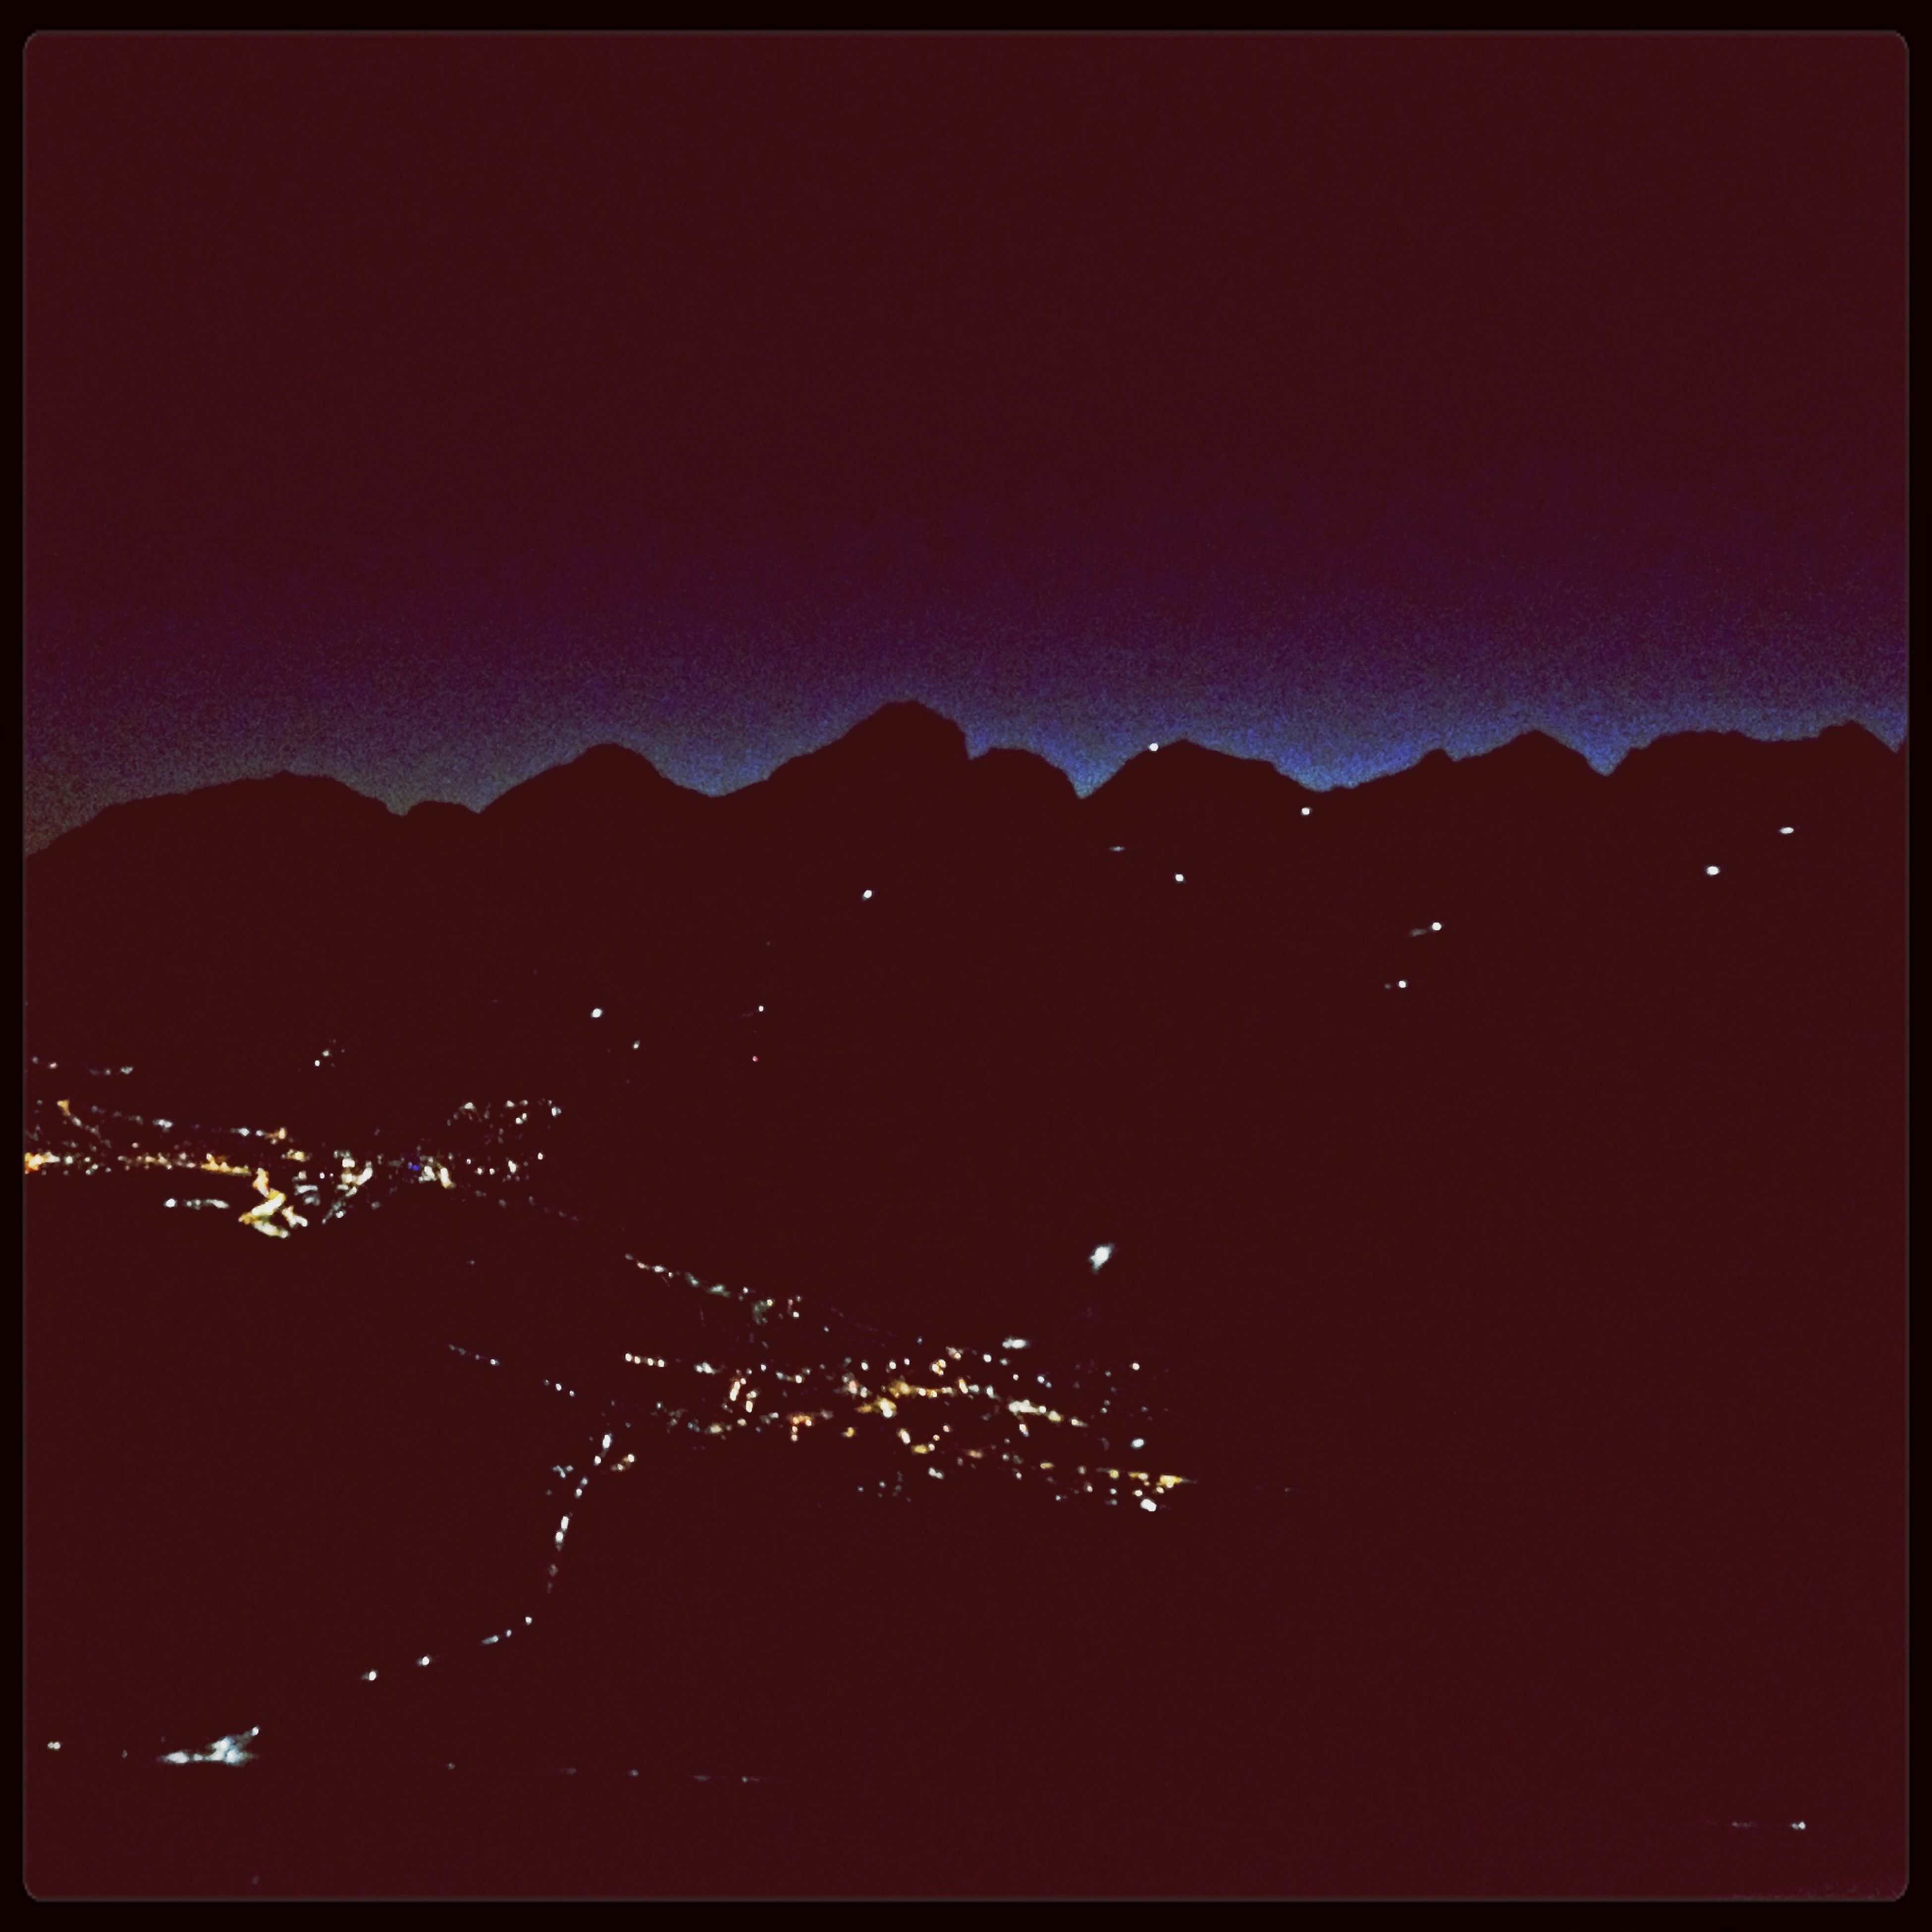 night, illuminated, mountain, mountain range, transfer print, sky, copy space, building exterior, clear sky, scenics, dusk, dark, built structure, auto post production filter, city, cityscape, architecture, silhouette, beauty in nature, landscape